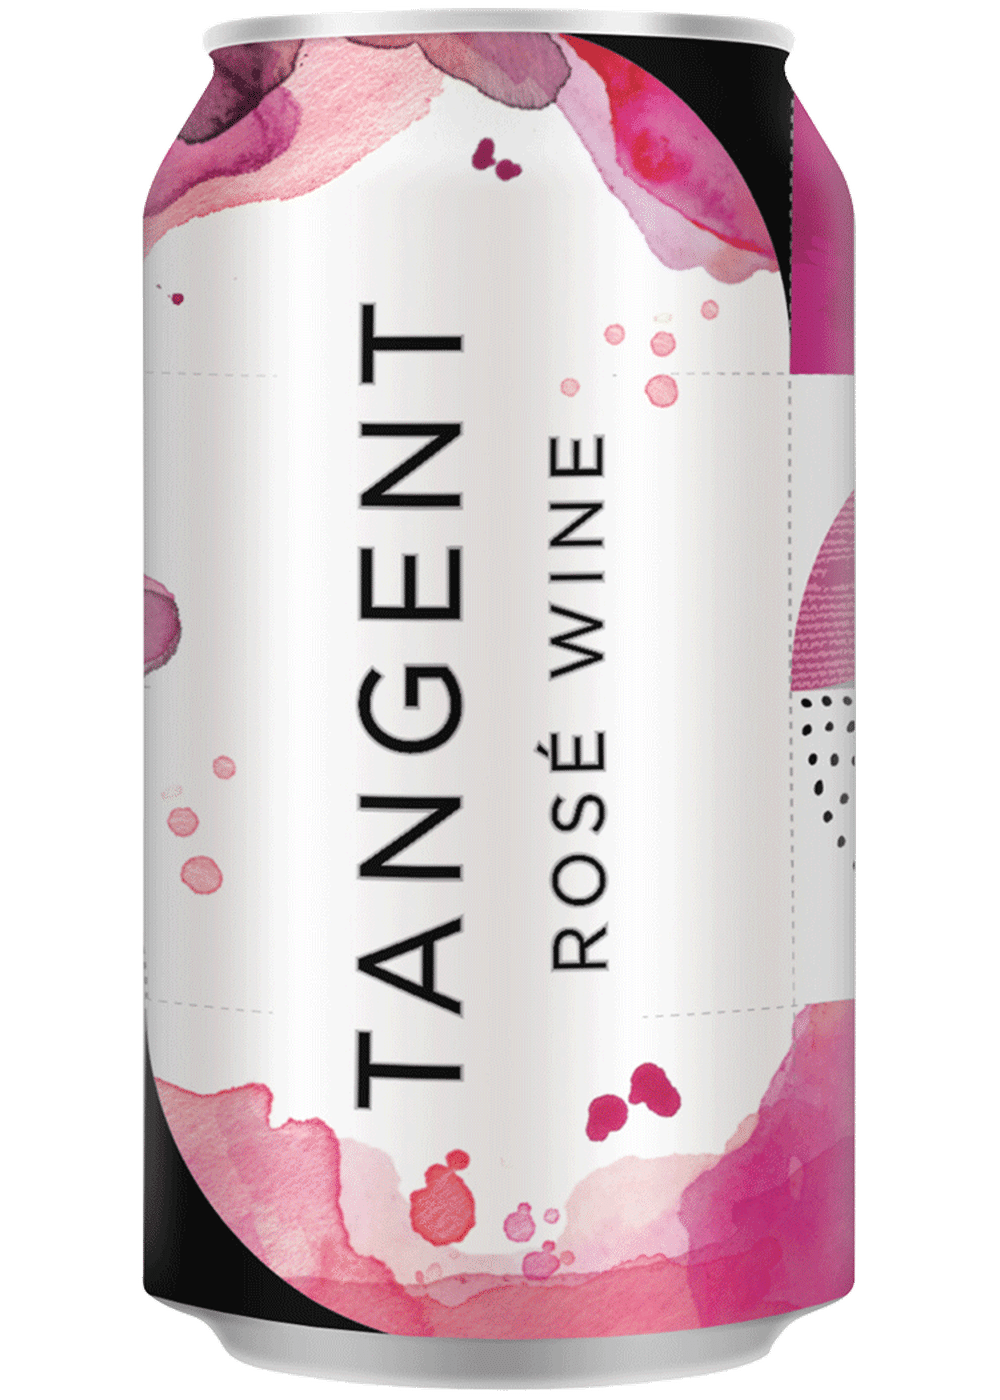 Tangent Winery Rosé Wine, Edna Valley, California